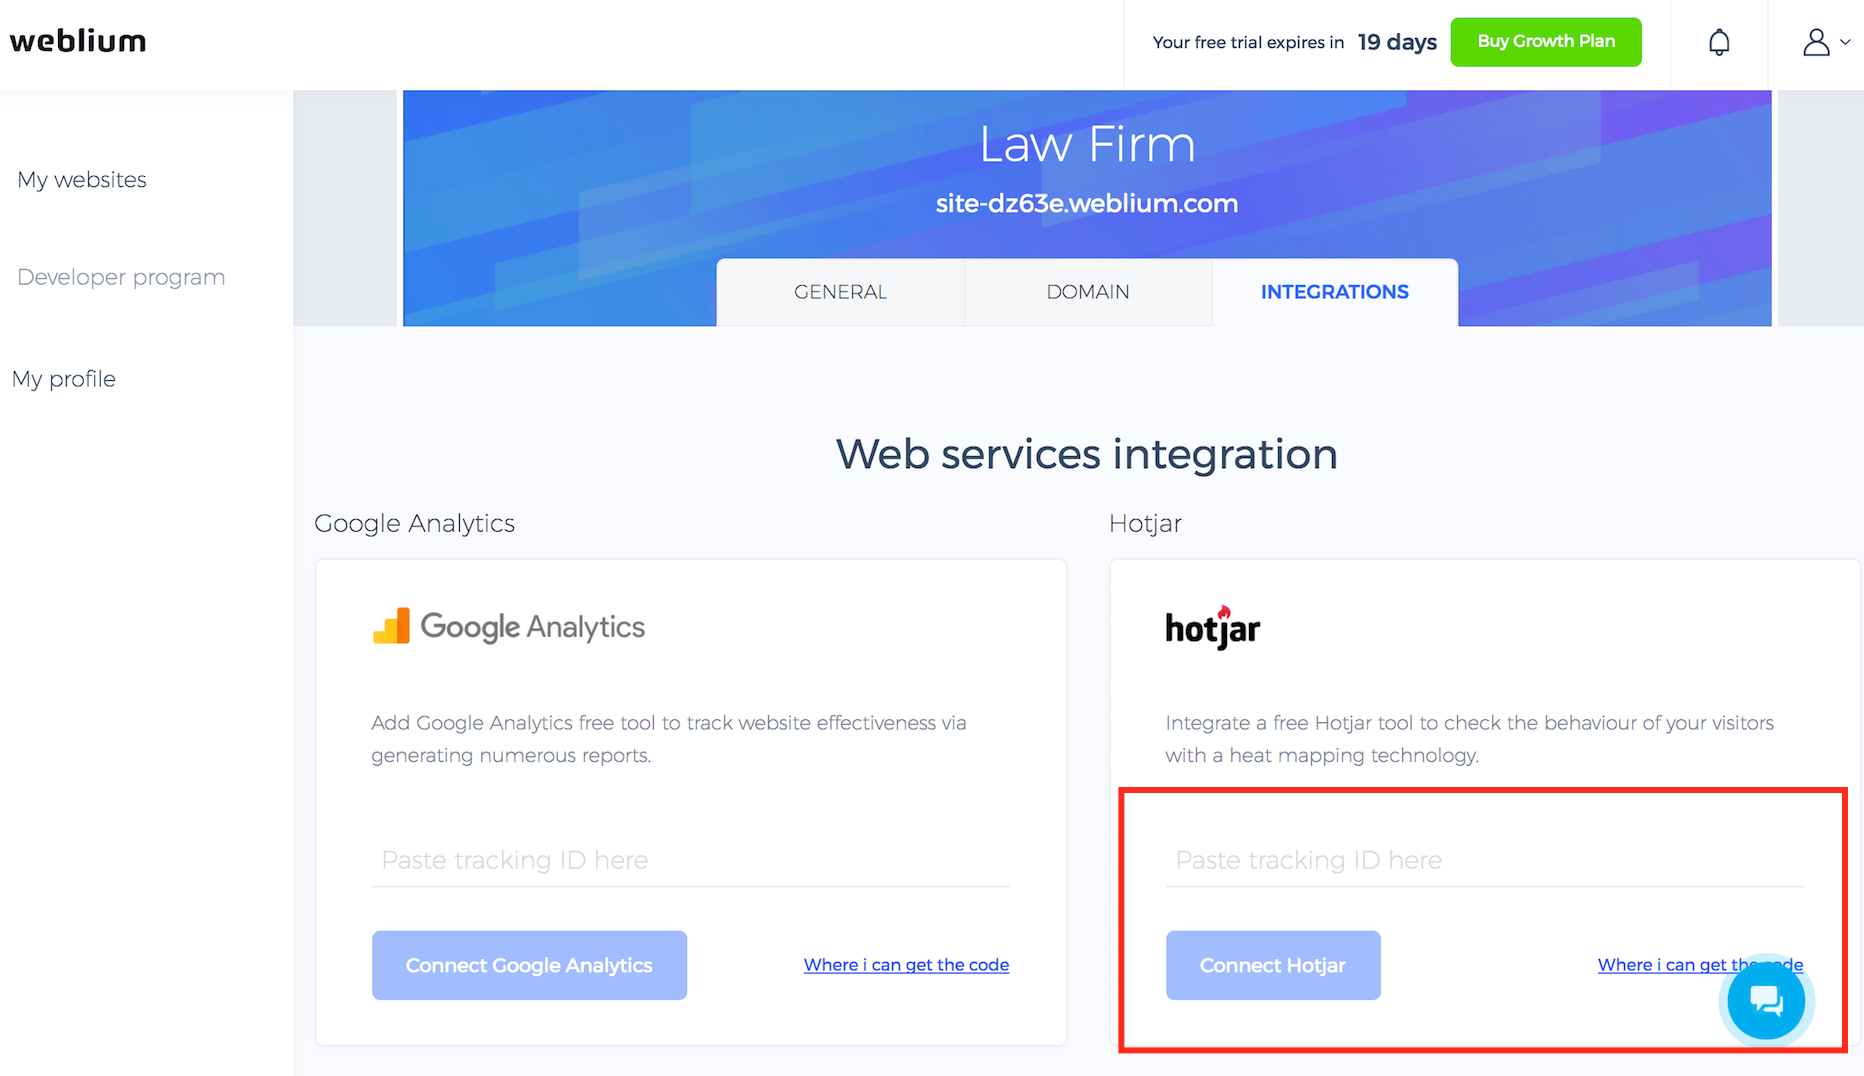 Connect Hotjar to your website on Weblium